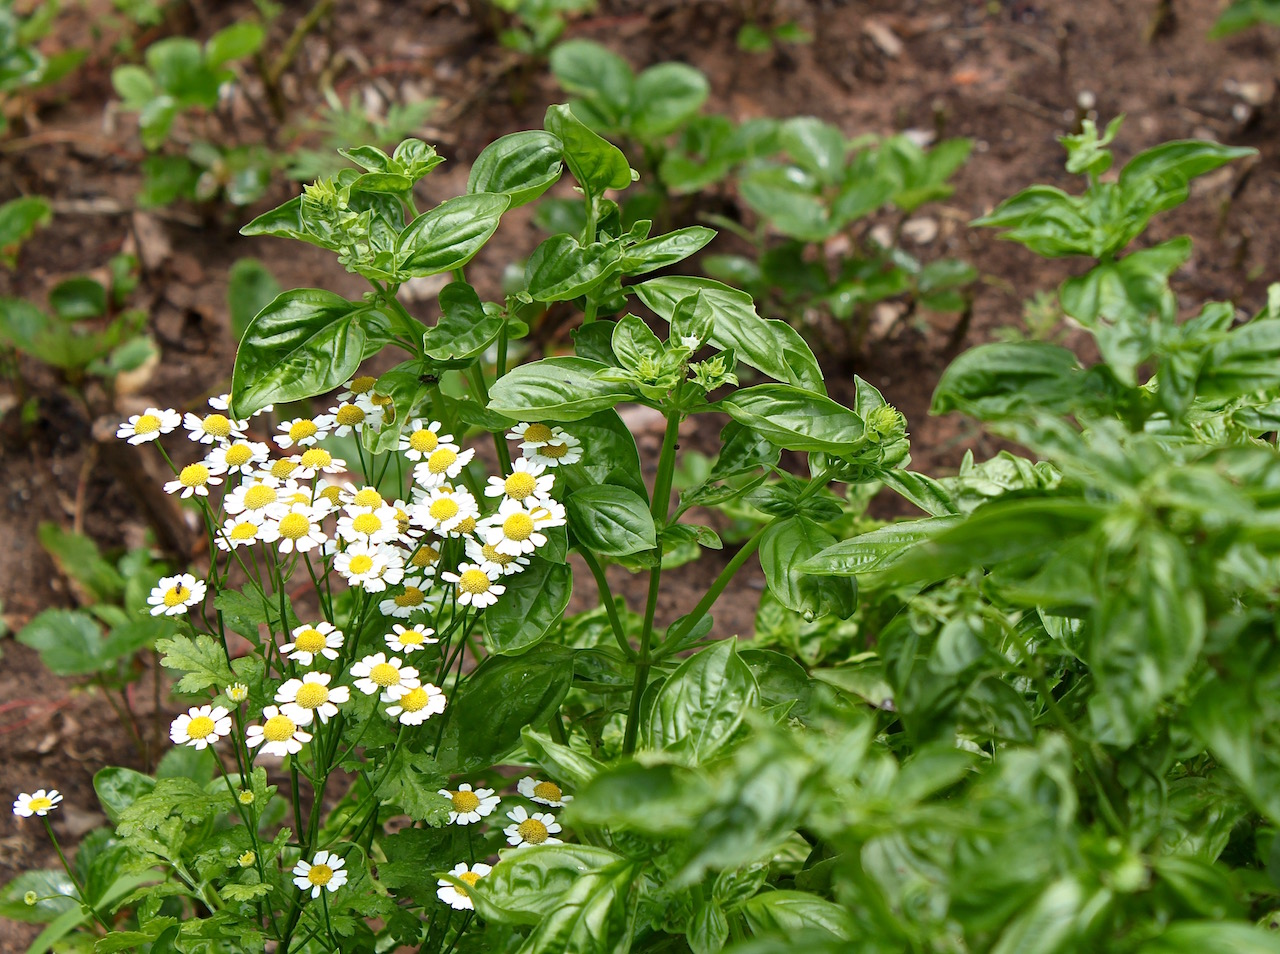 Pyrethrum is a natural pesticide, while basil repels insects with its strong smell.